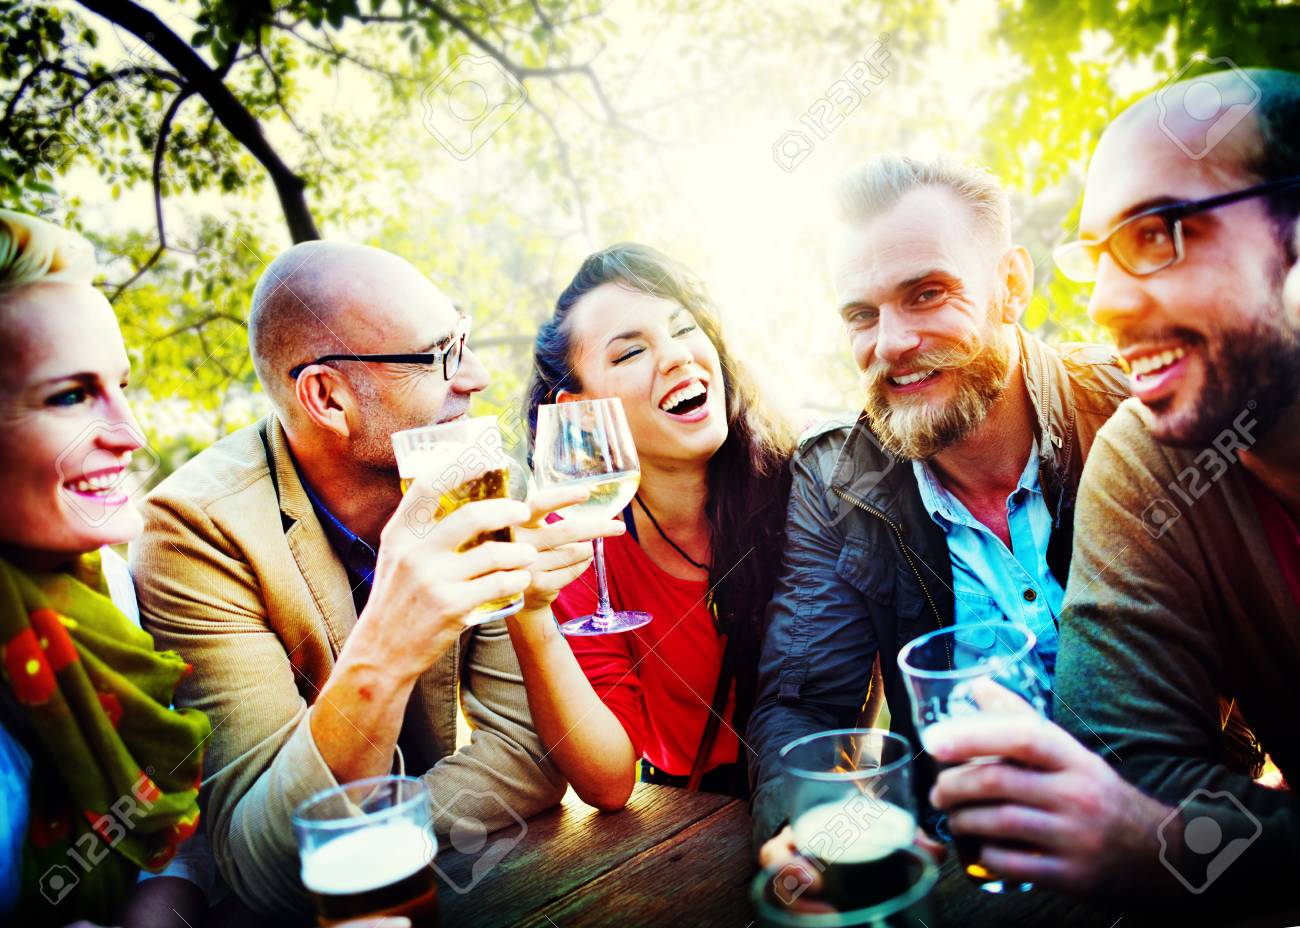 Friends Friendship Outdoor Chilling Togetherness Concept - 45905620